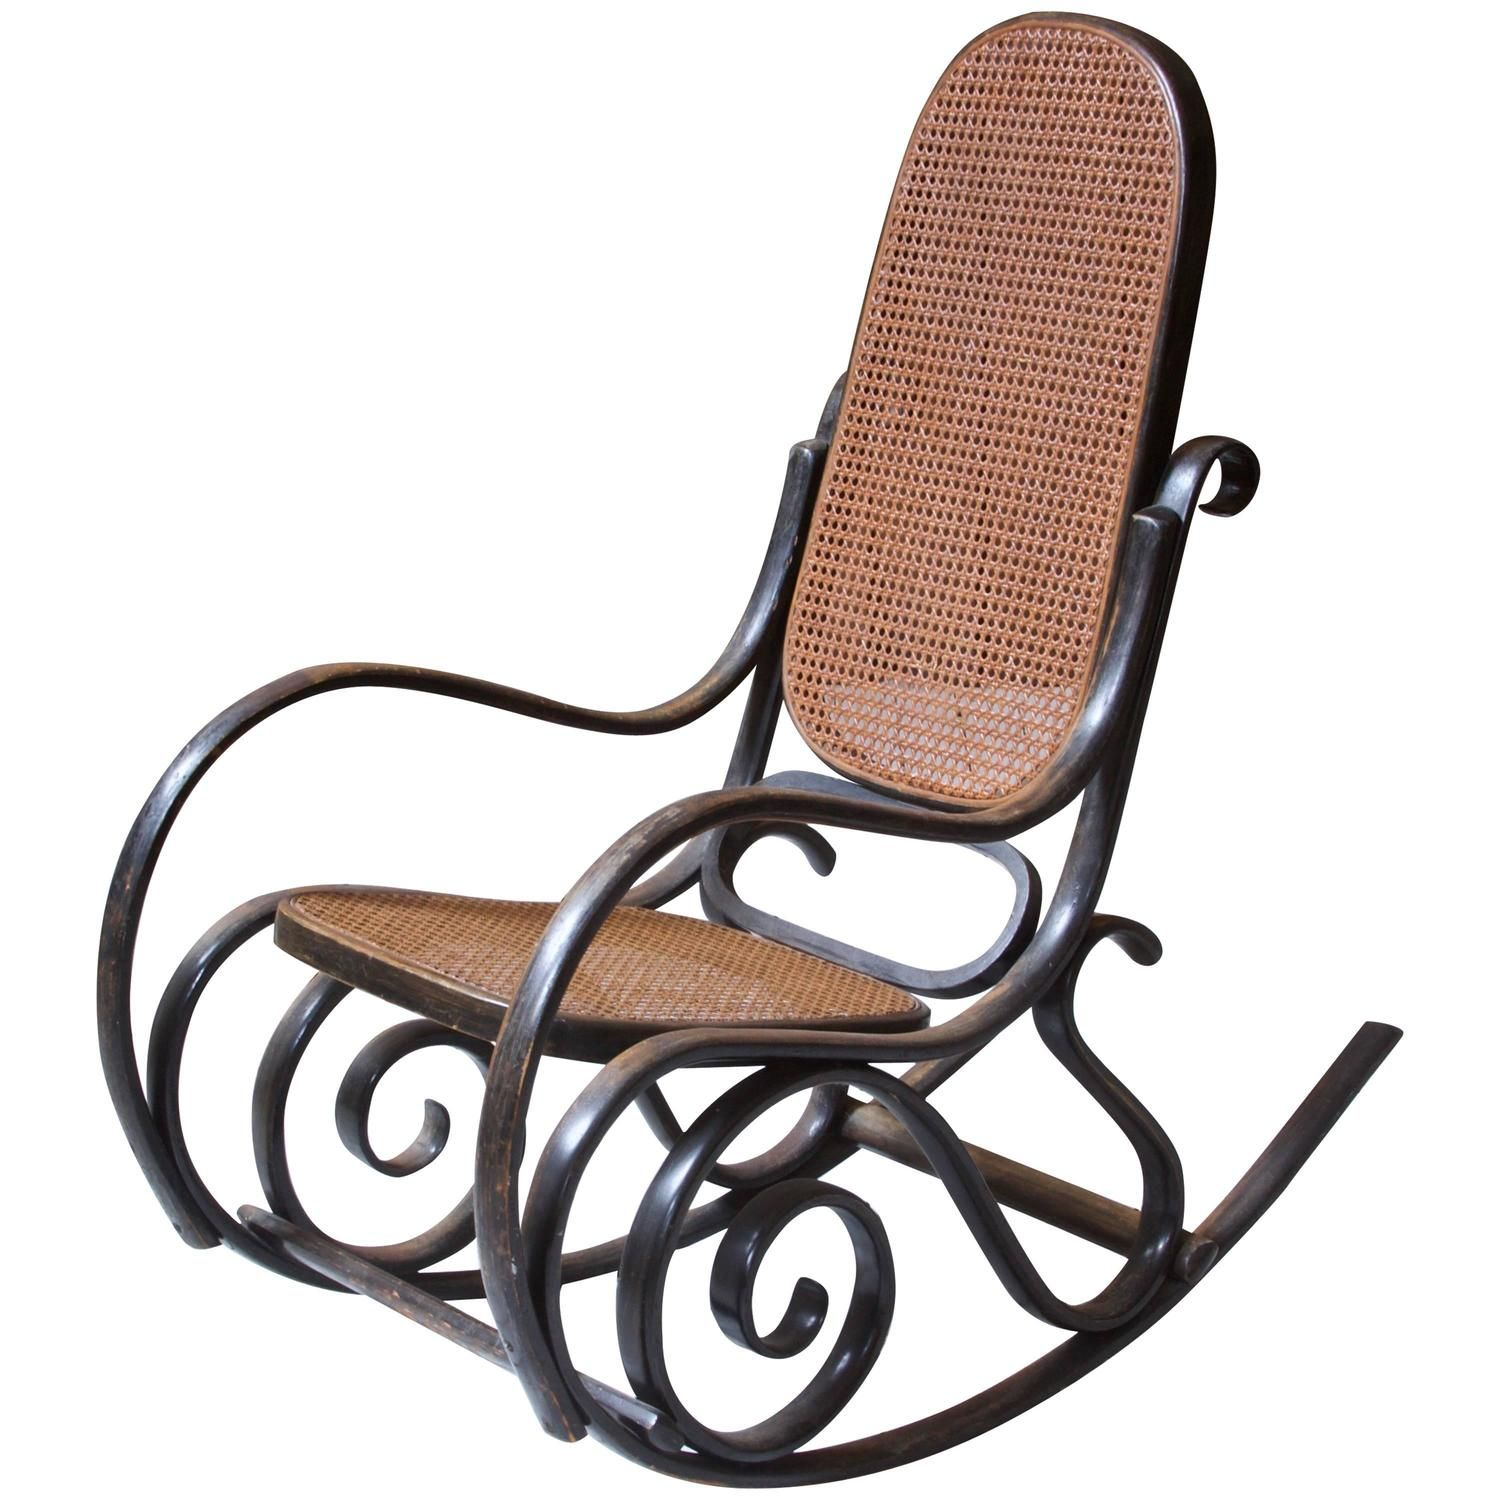 Antique Thonet Model #10 Bentwood Rocking Chair; Salvatore Leone, circa  1890s - Antique Thonet Model #10 Bentwood Rocking Chair; Salvatore Leone